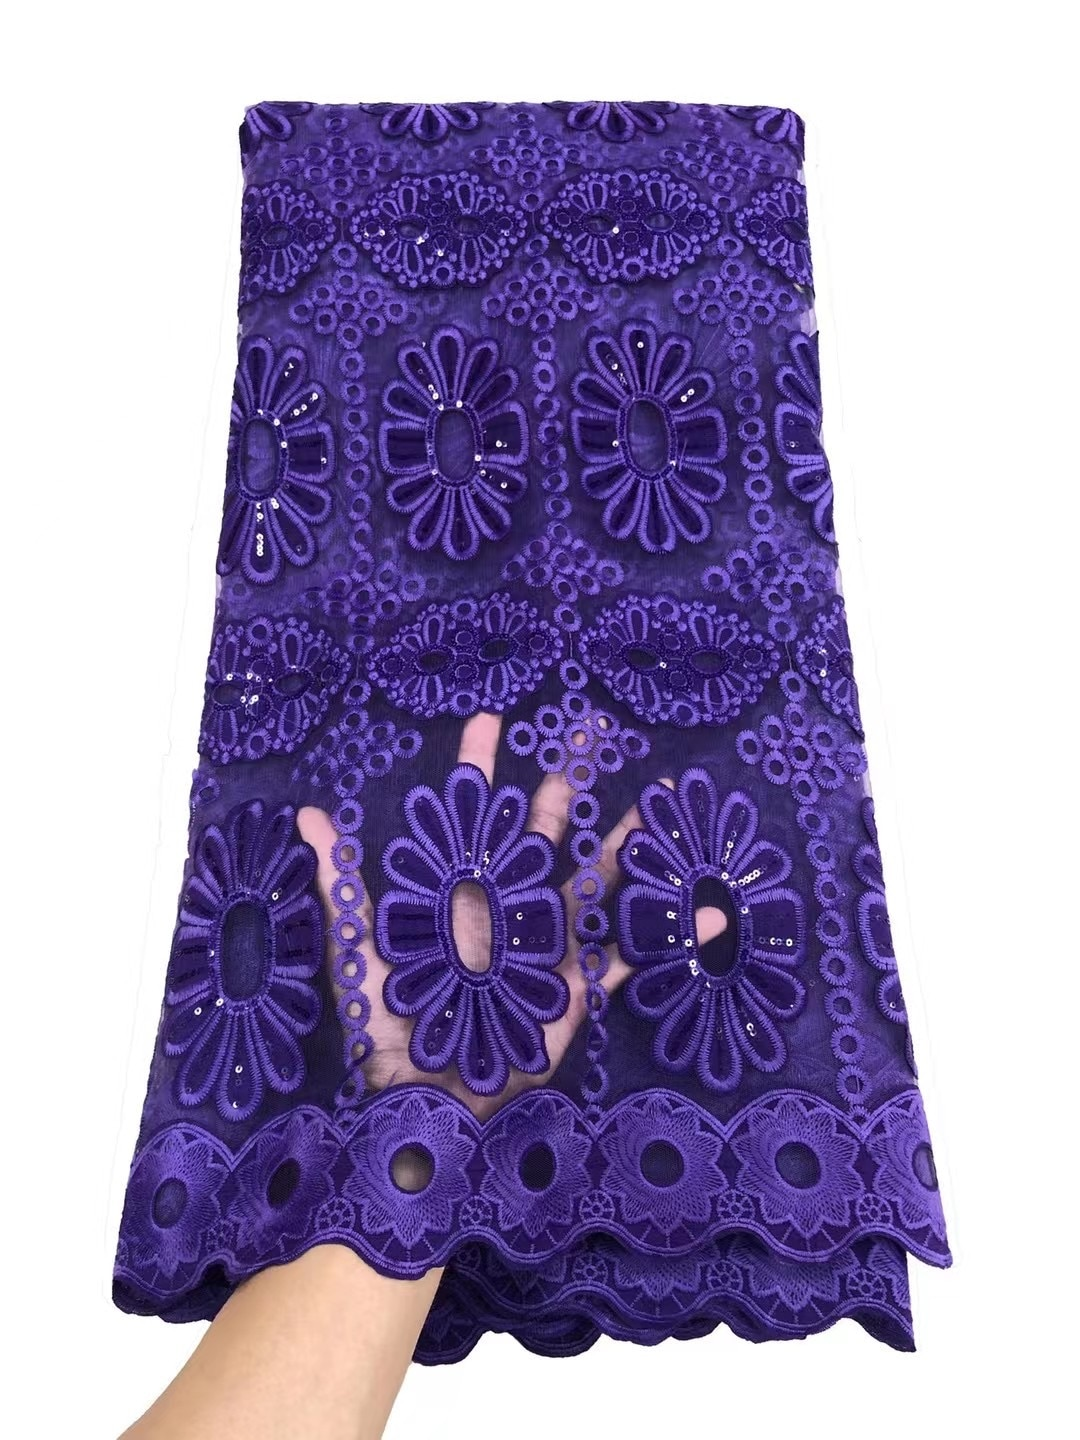 Newest African Tulle Lace Fabric Purple embroidered Net Lace French Sewing Women Party Dress Designer Nigerian Lace Fabric